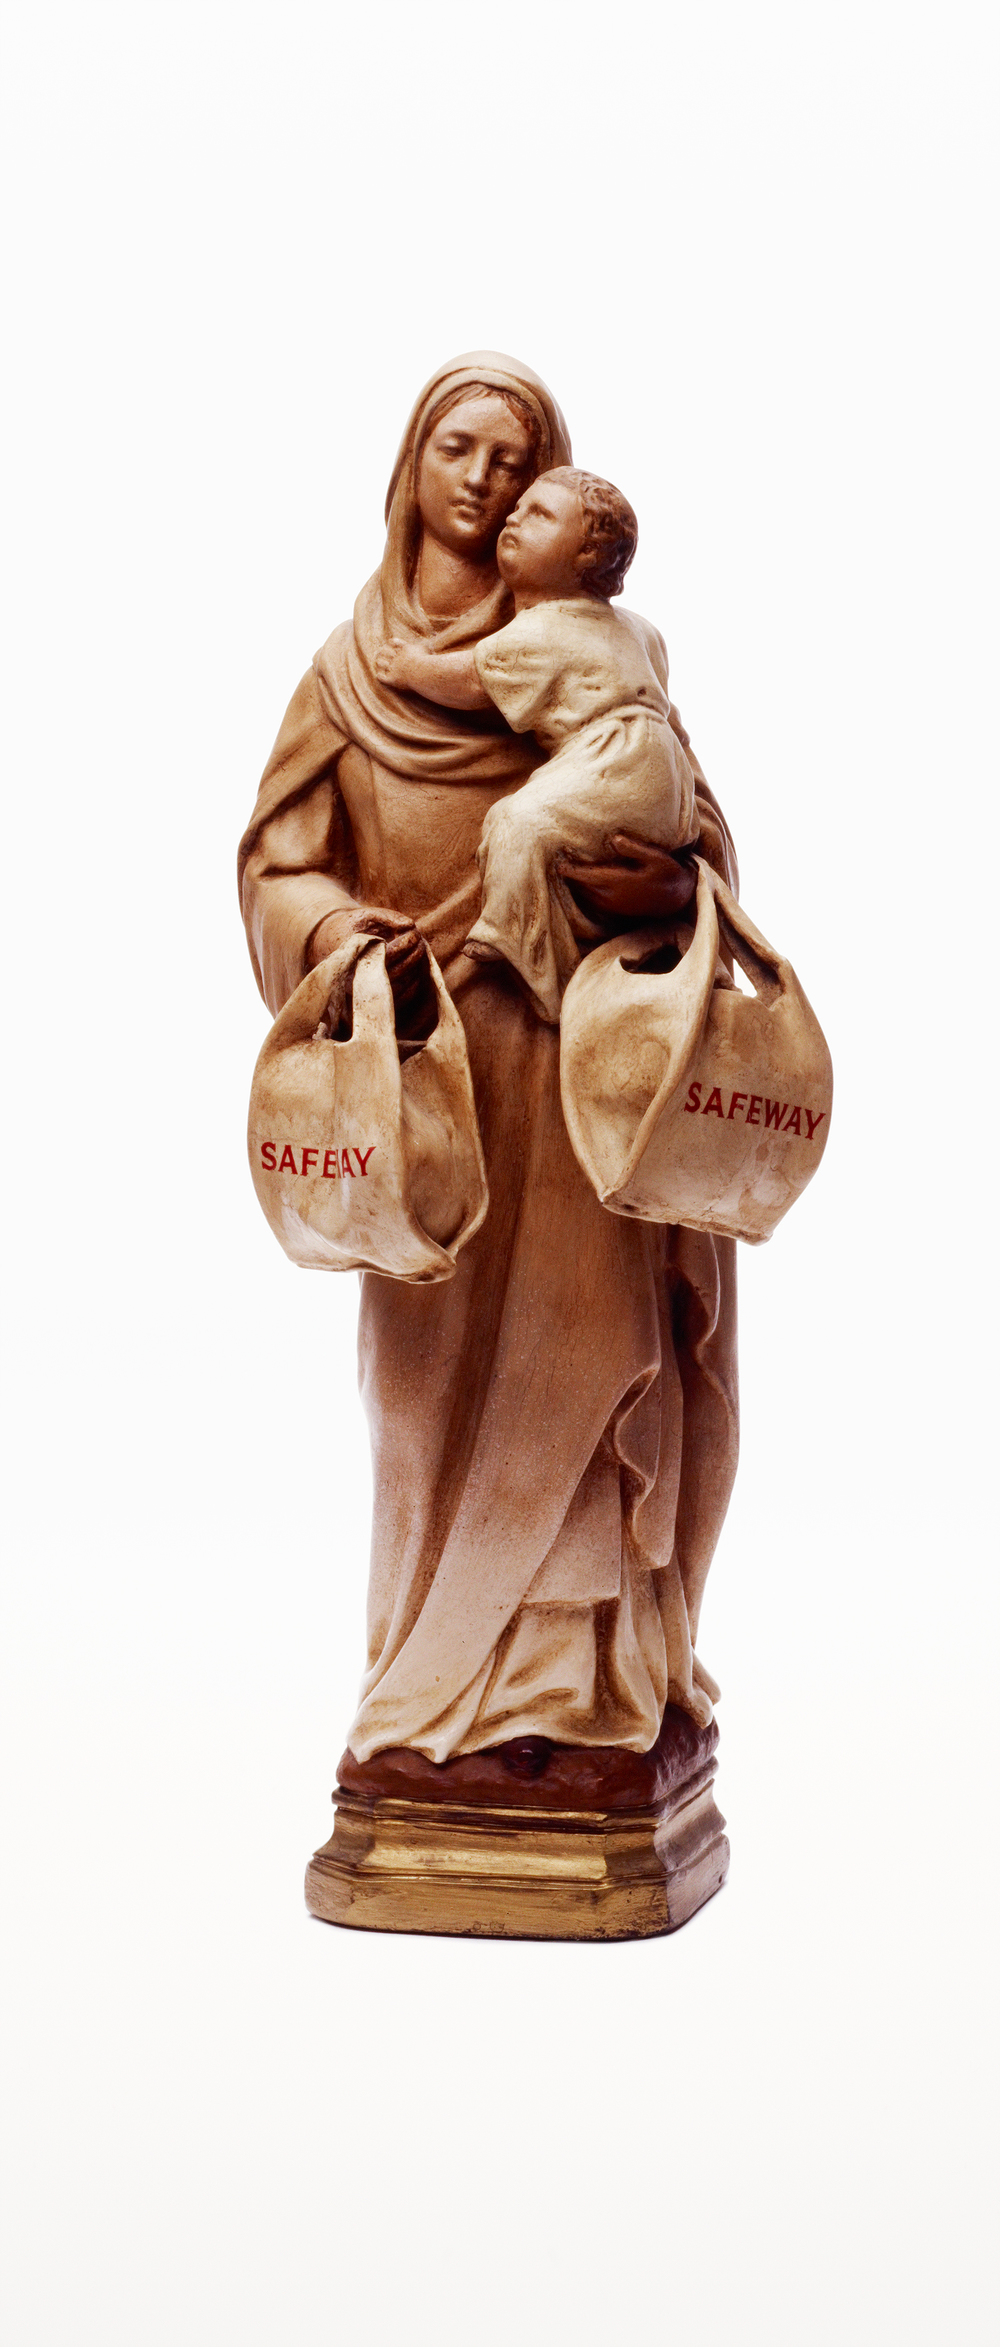 Madonna with Safeway bags